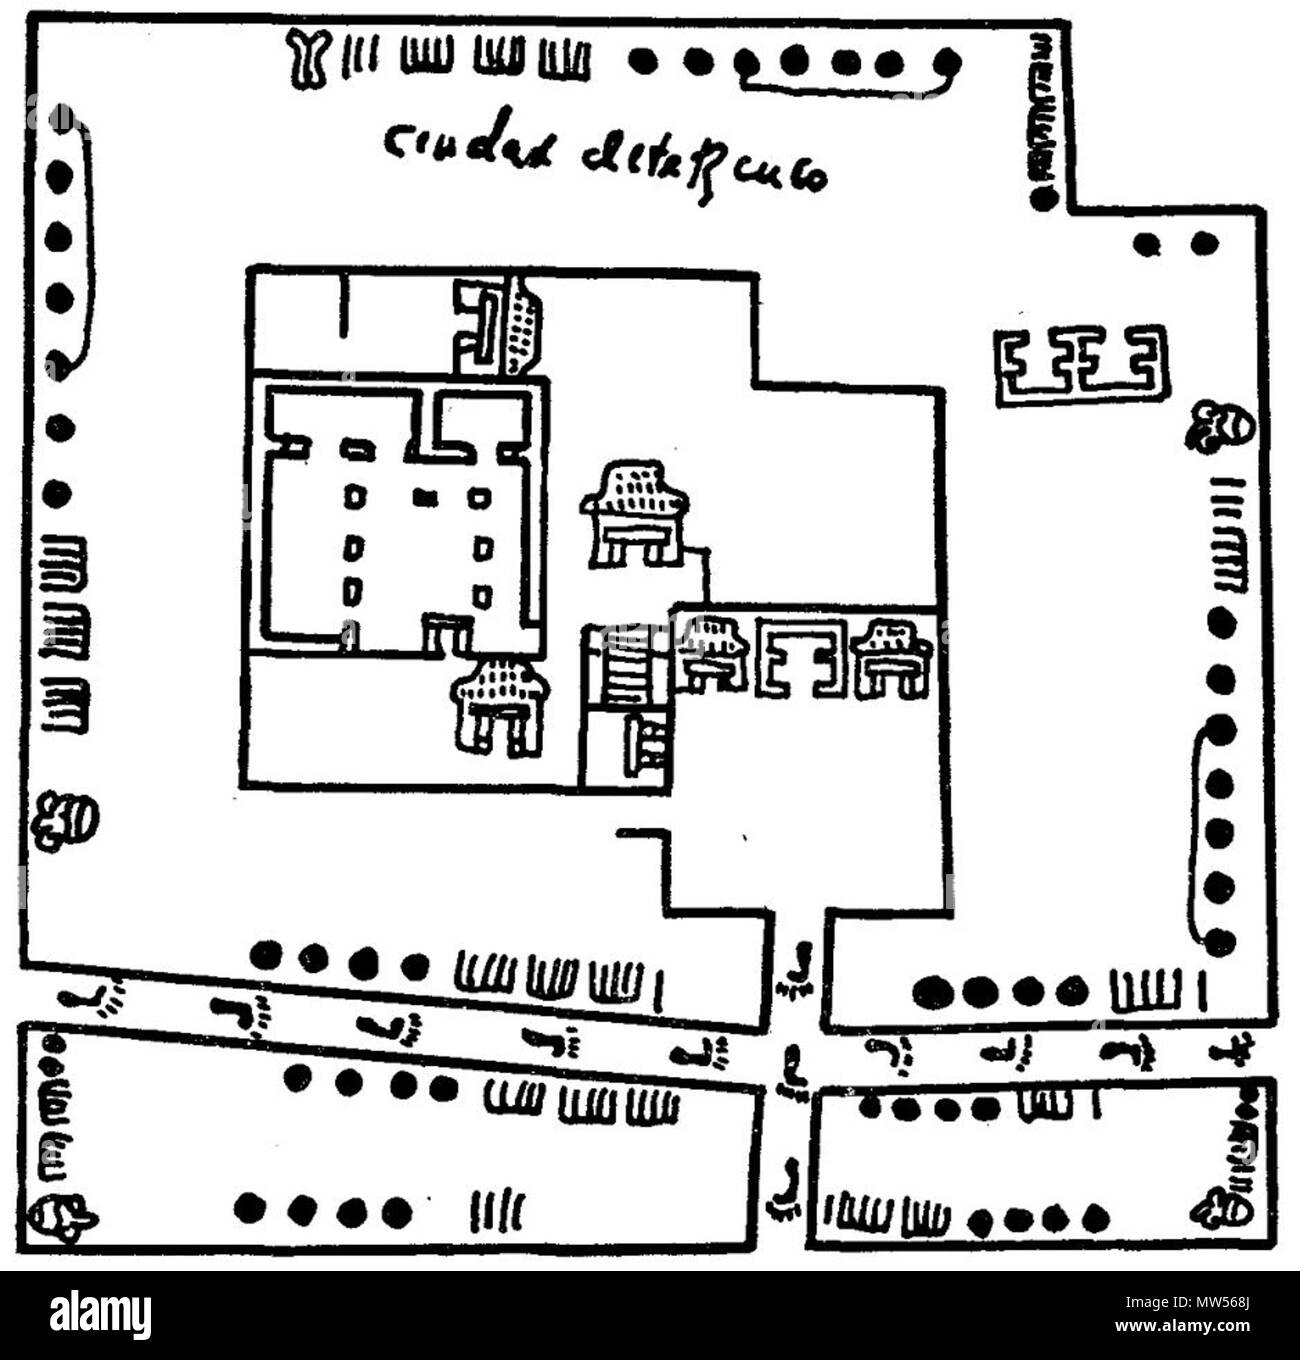 . English: Depiction of Texcoco city showing its dimensions by the Aztec Metric System detail in the Codex Humboldt Fragment VI . between 1500 and 1600. Unknown 591 Texcoco Aztec Metric System Codex Humboldt black and white detail Fragment VI - Stock Image